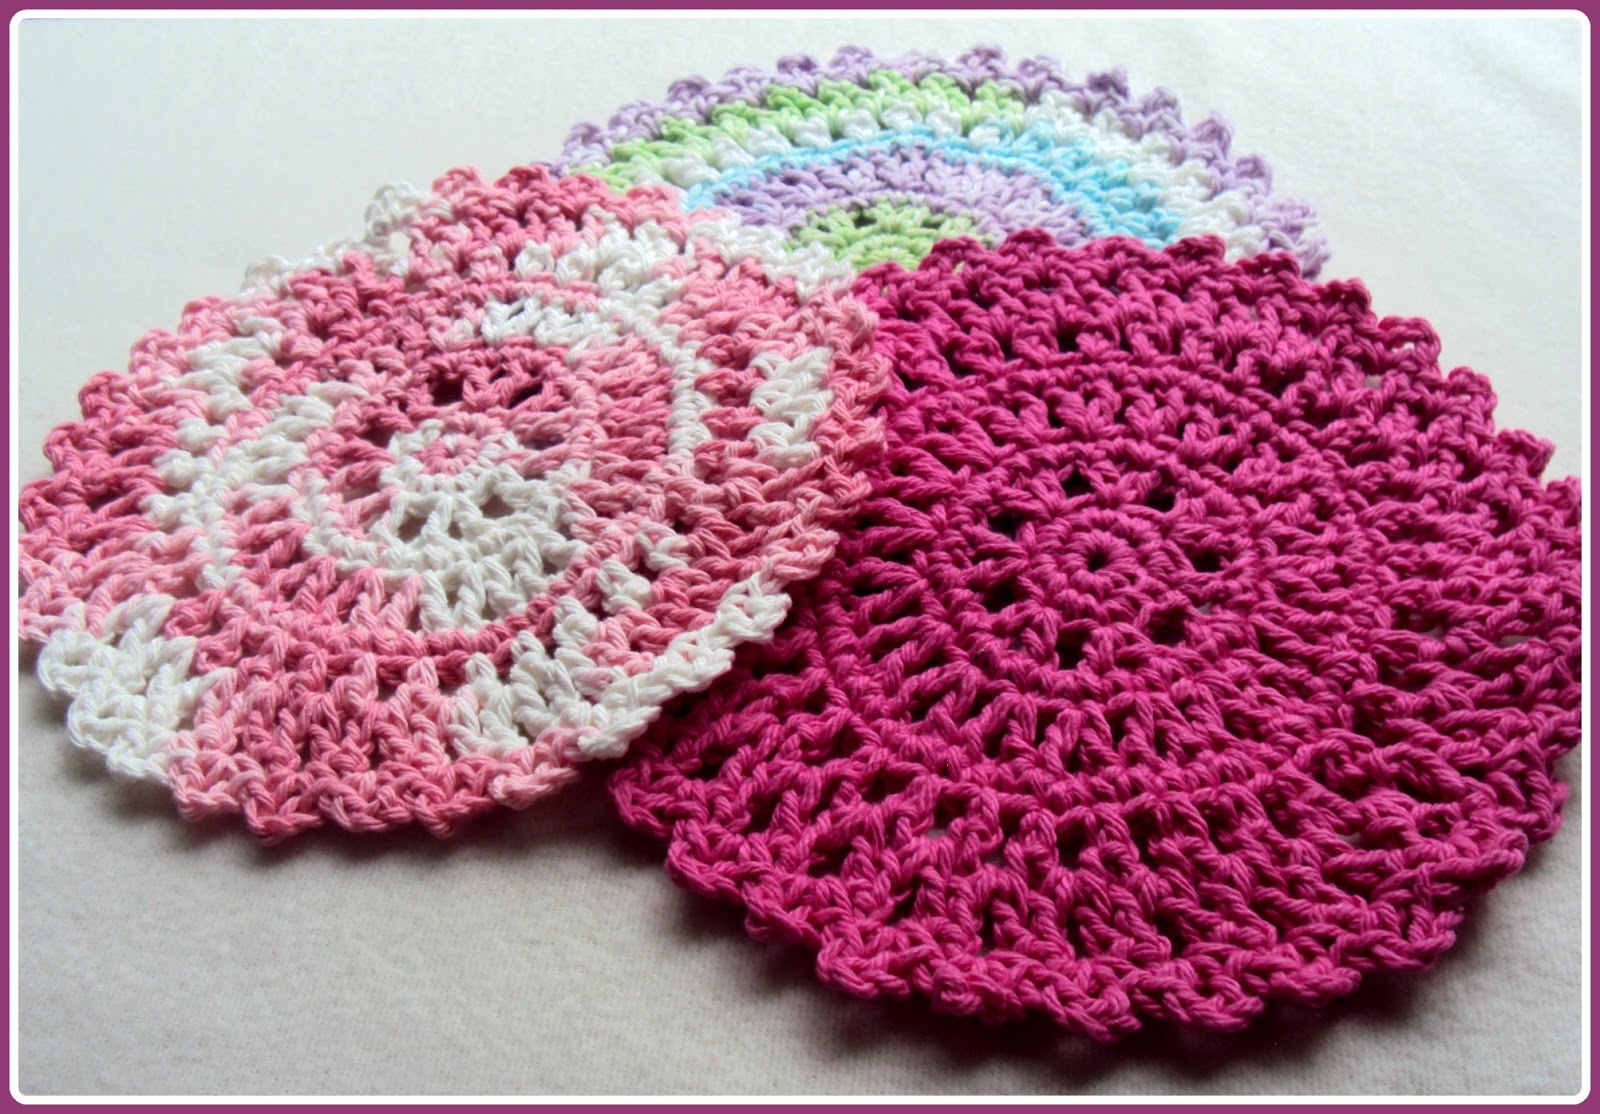 Crochet Patterns Using Thread : ... up quickly and beautifully when using both acrylic or cotton yarns